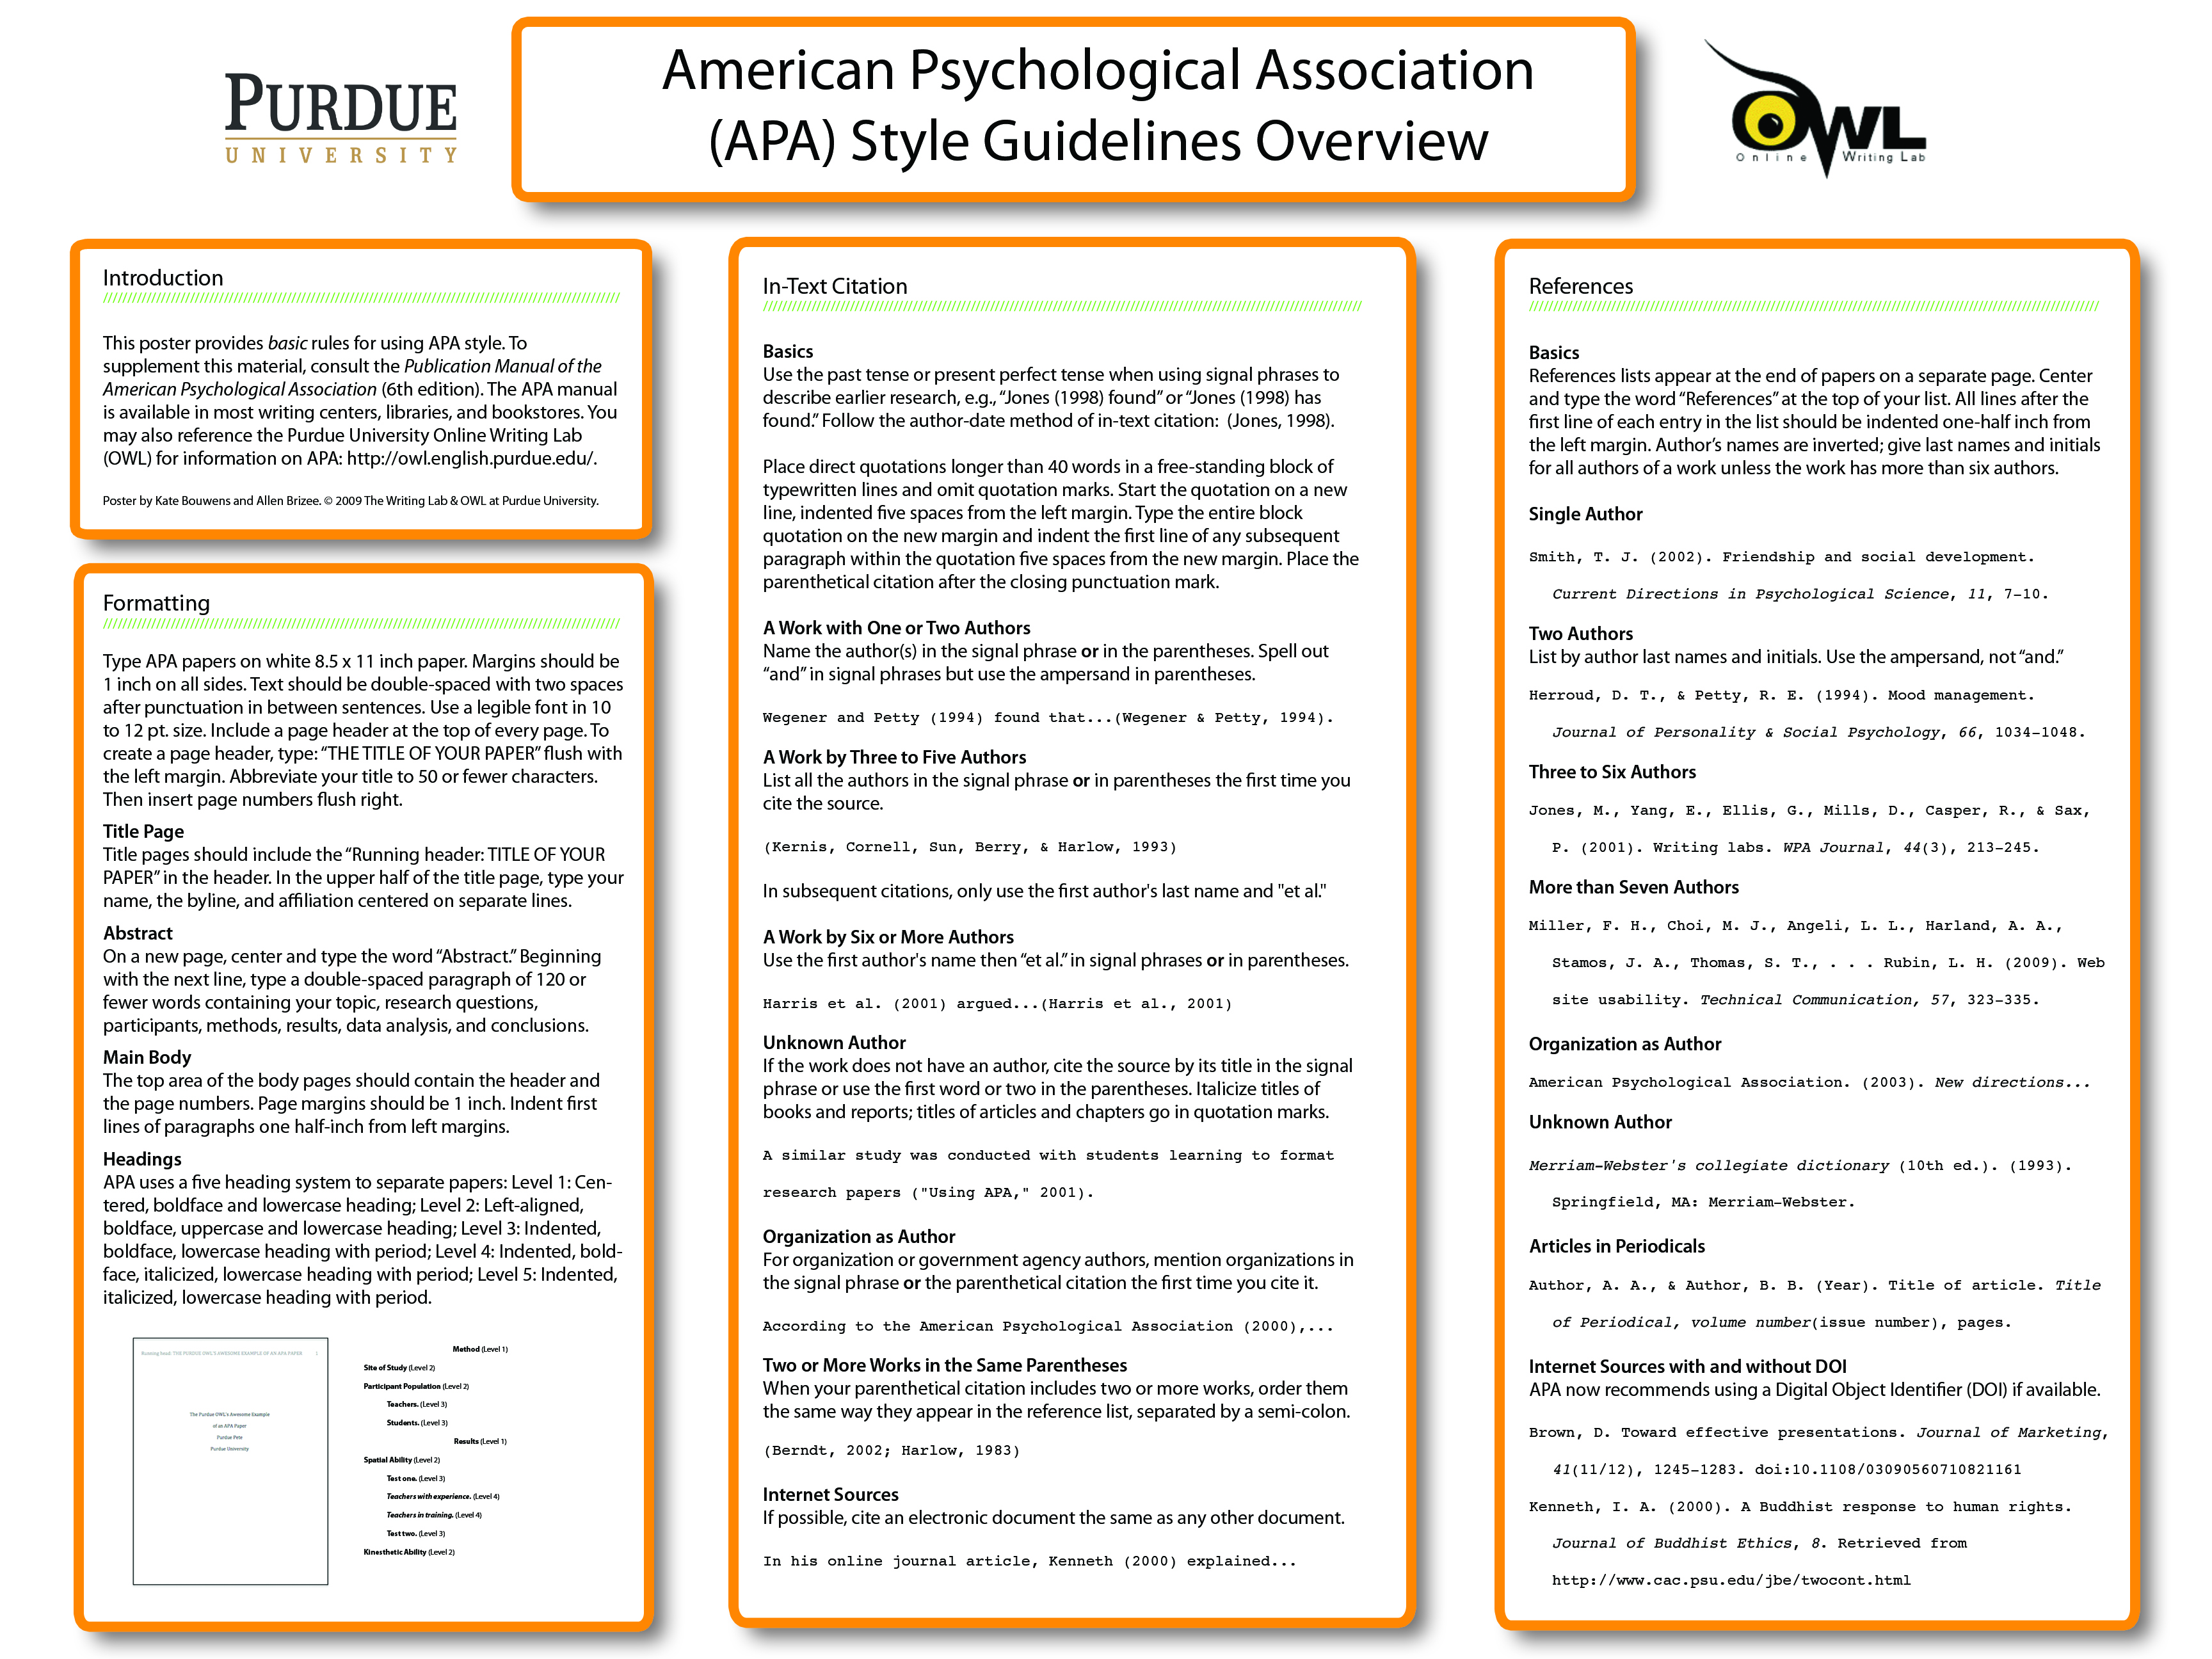 012 Research Paper How To Cite An Apa Shocking Article In A Online Full